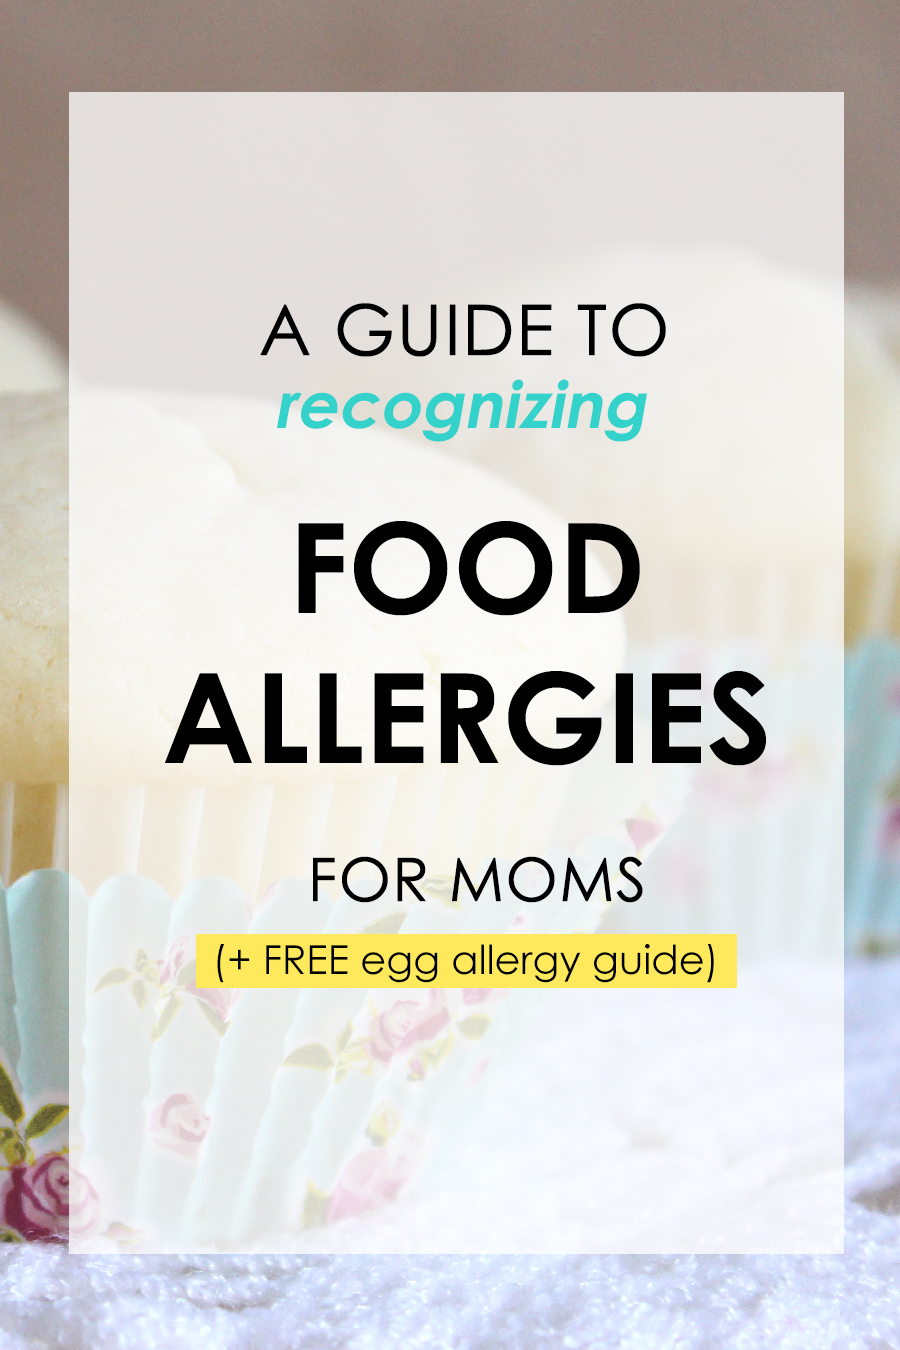 A guide to recognizing food allergies (for moms) + free egg allergy guide. Click to read and download.